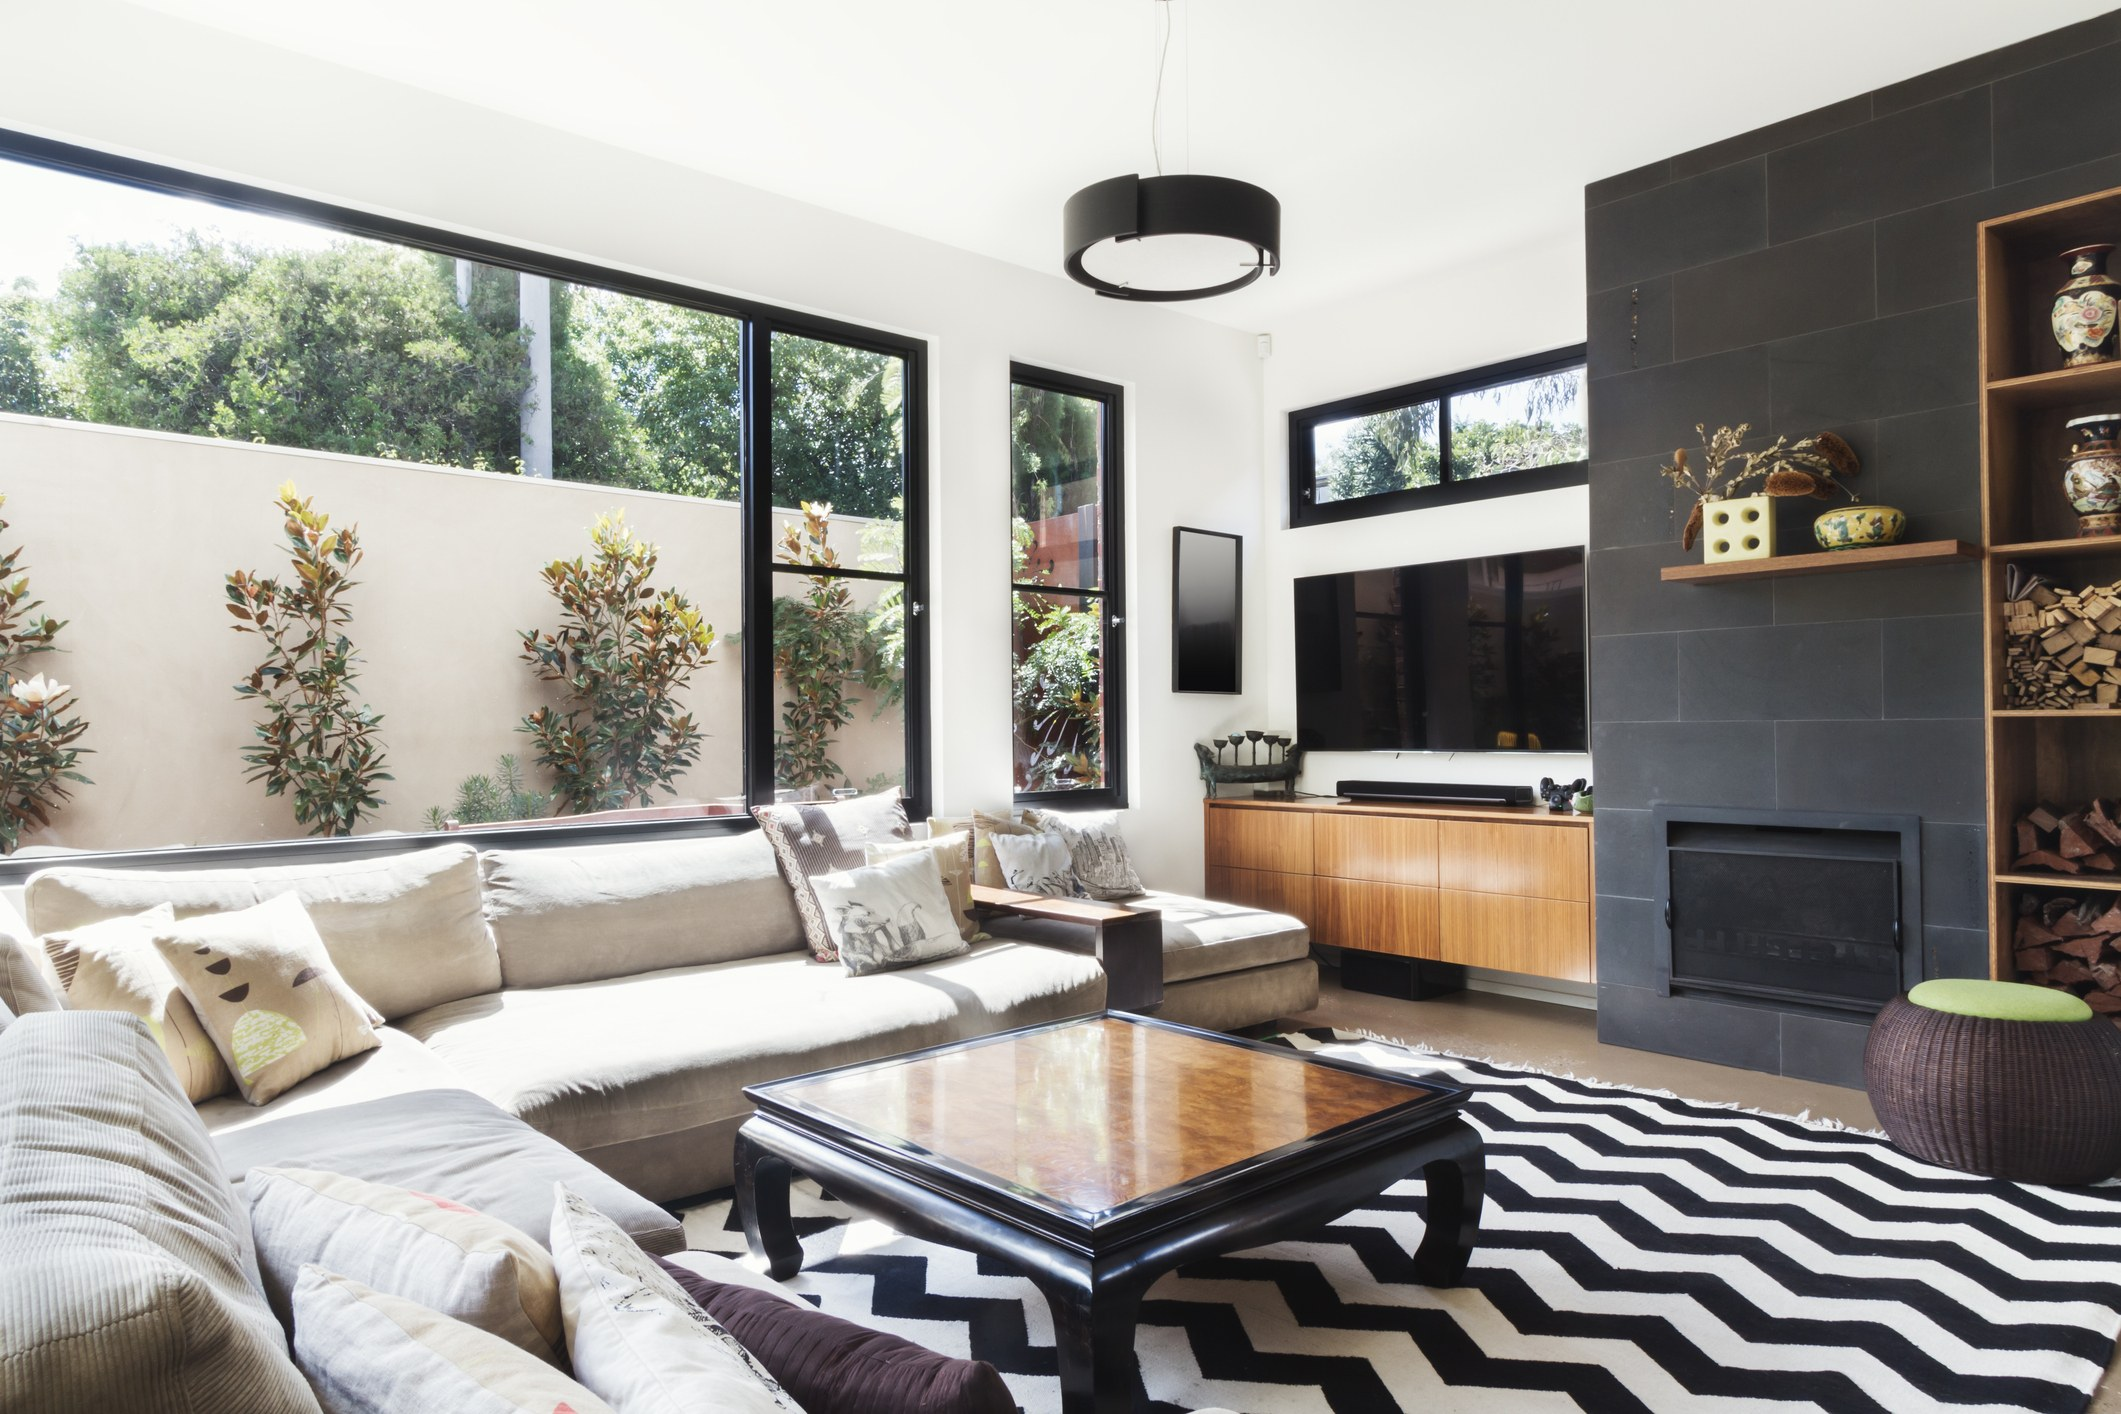 Monochrome living room with wood and black tiling accents